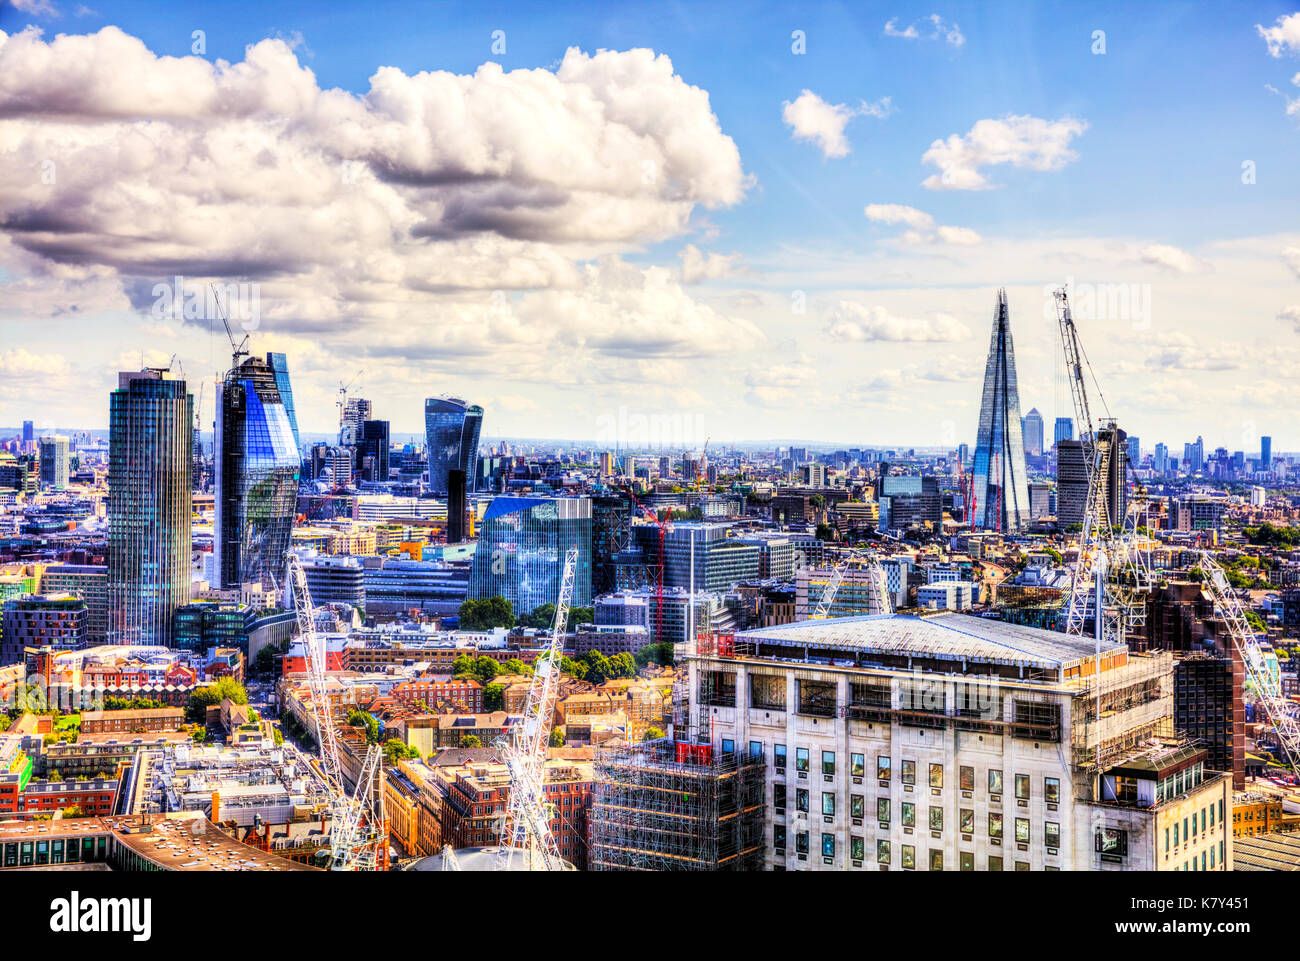 City of London square mile, Shard, Walkie-Talkie, NatWest Tower buildings, London construction, London buildings, London aerial view, London skyline - Stock Image